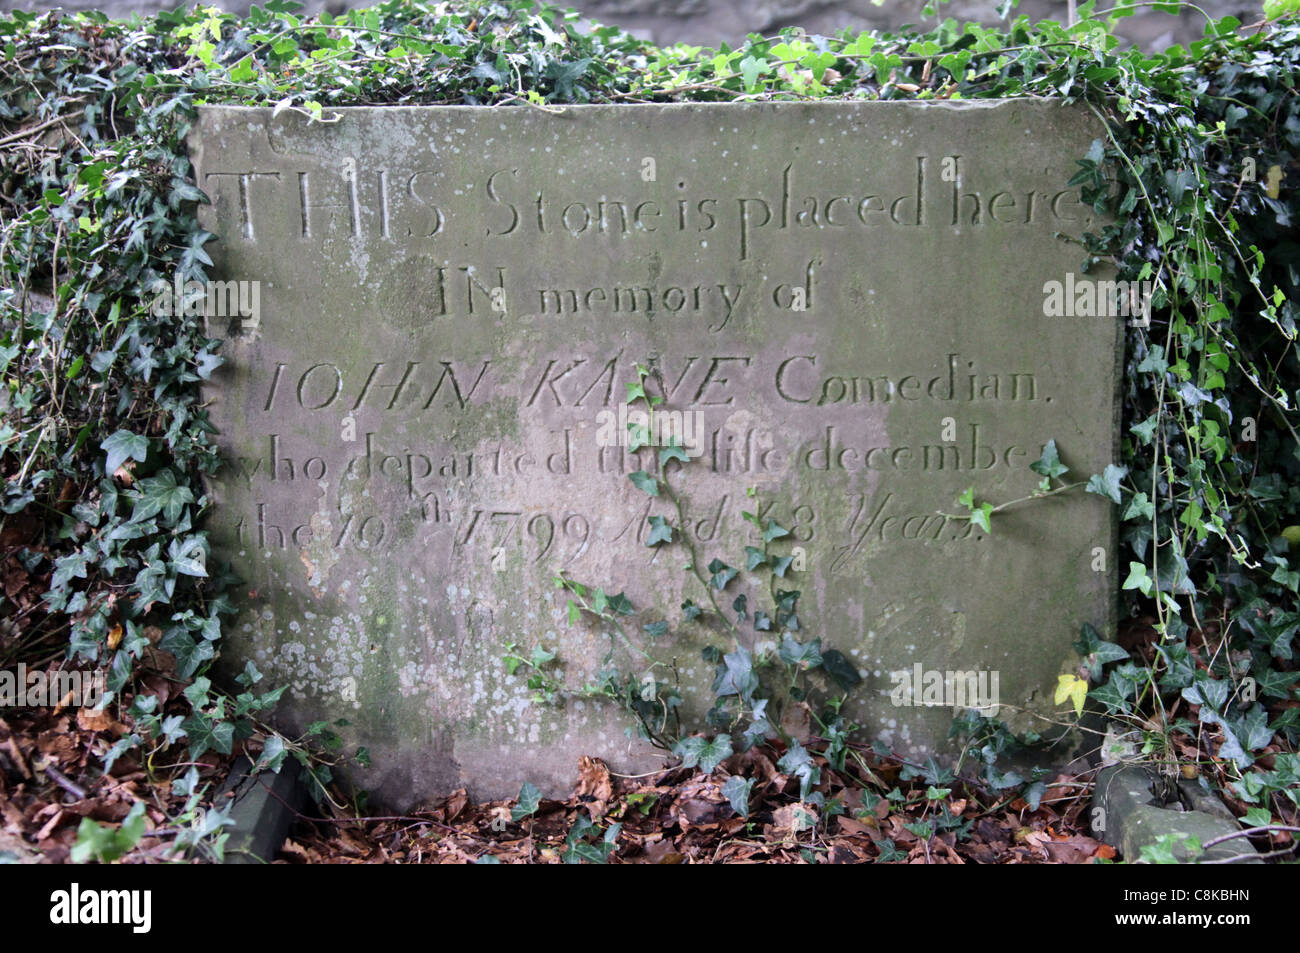 The Grave of John Kane in Buxton who died after eating hemlock instead of horseradish Stock Photo